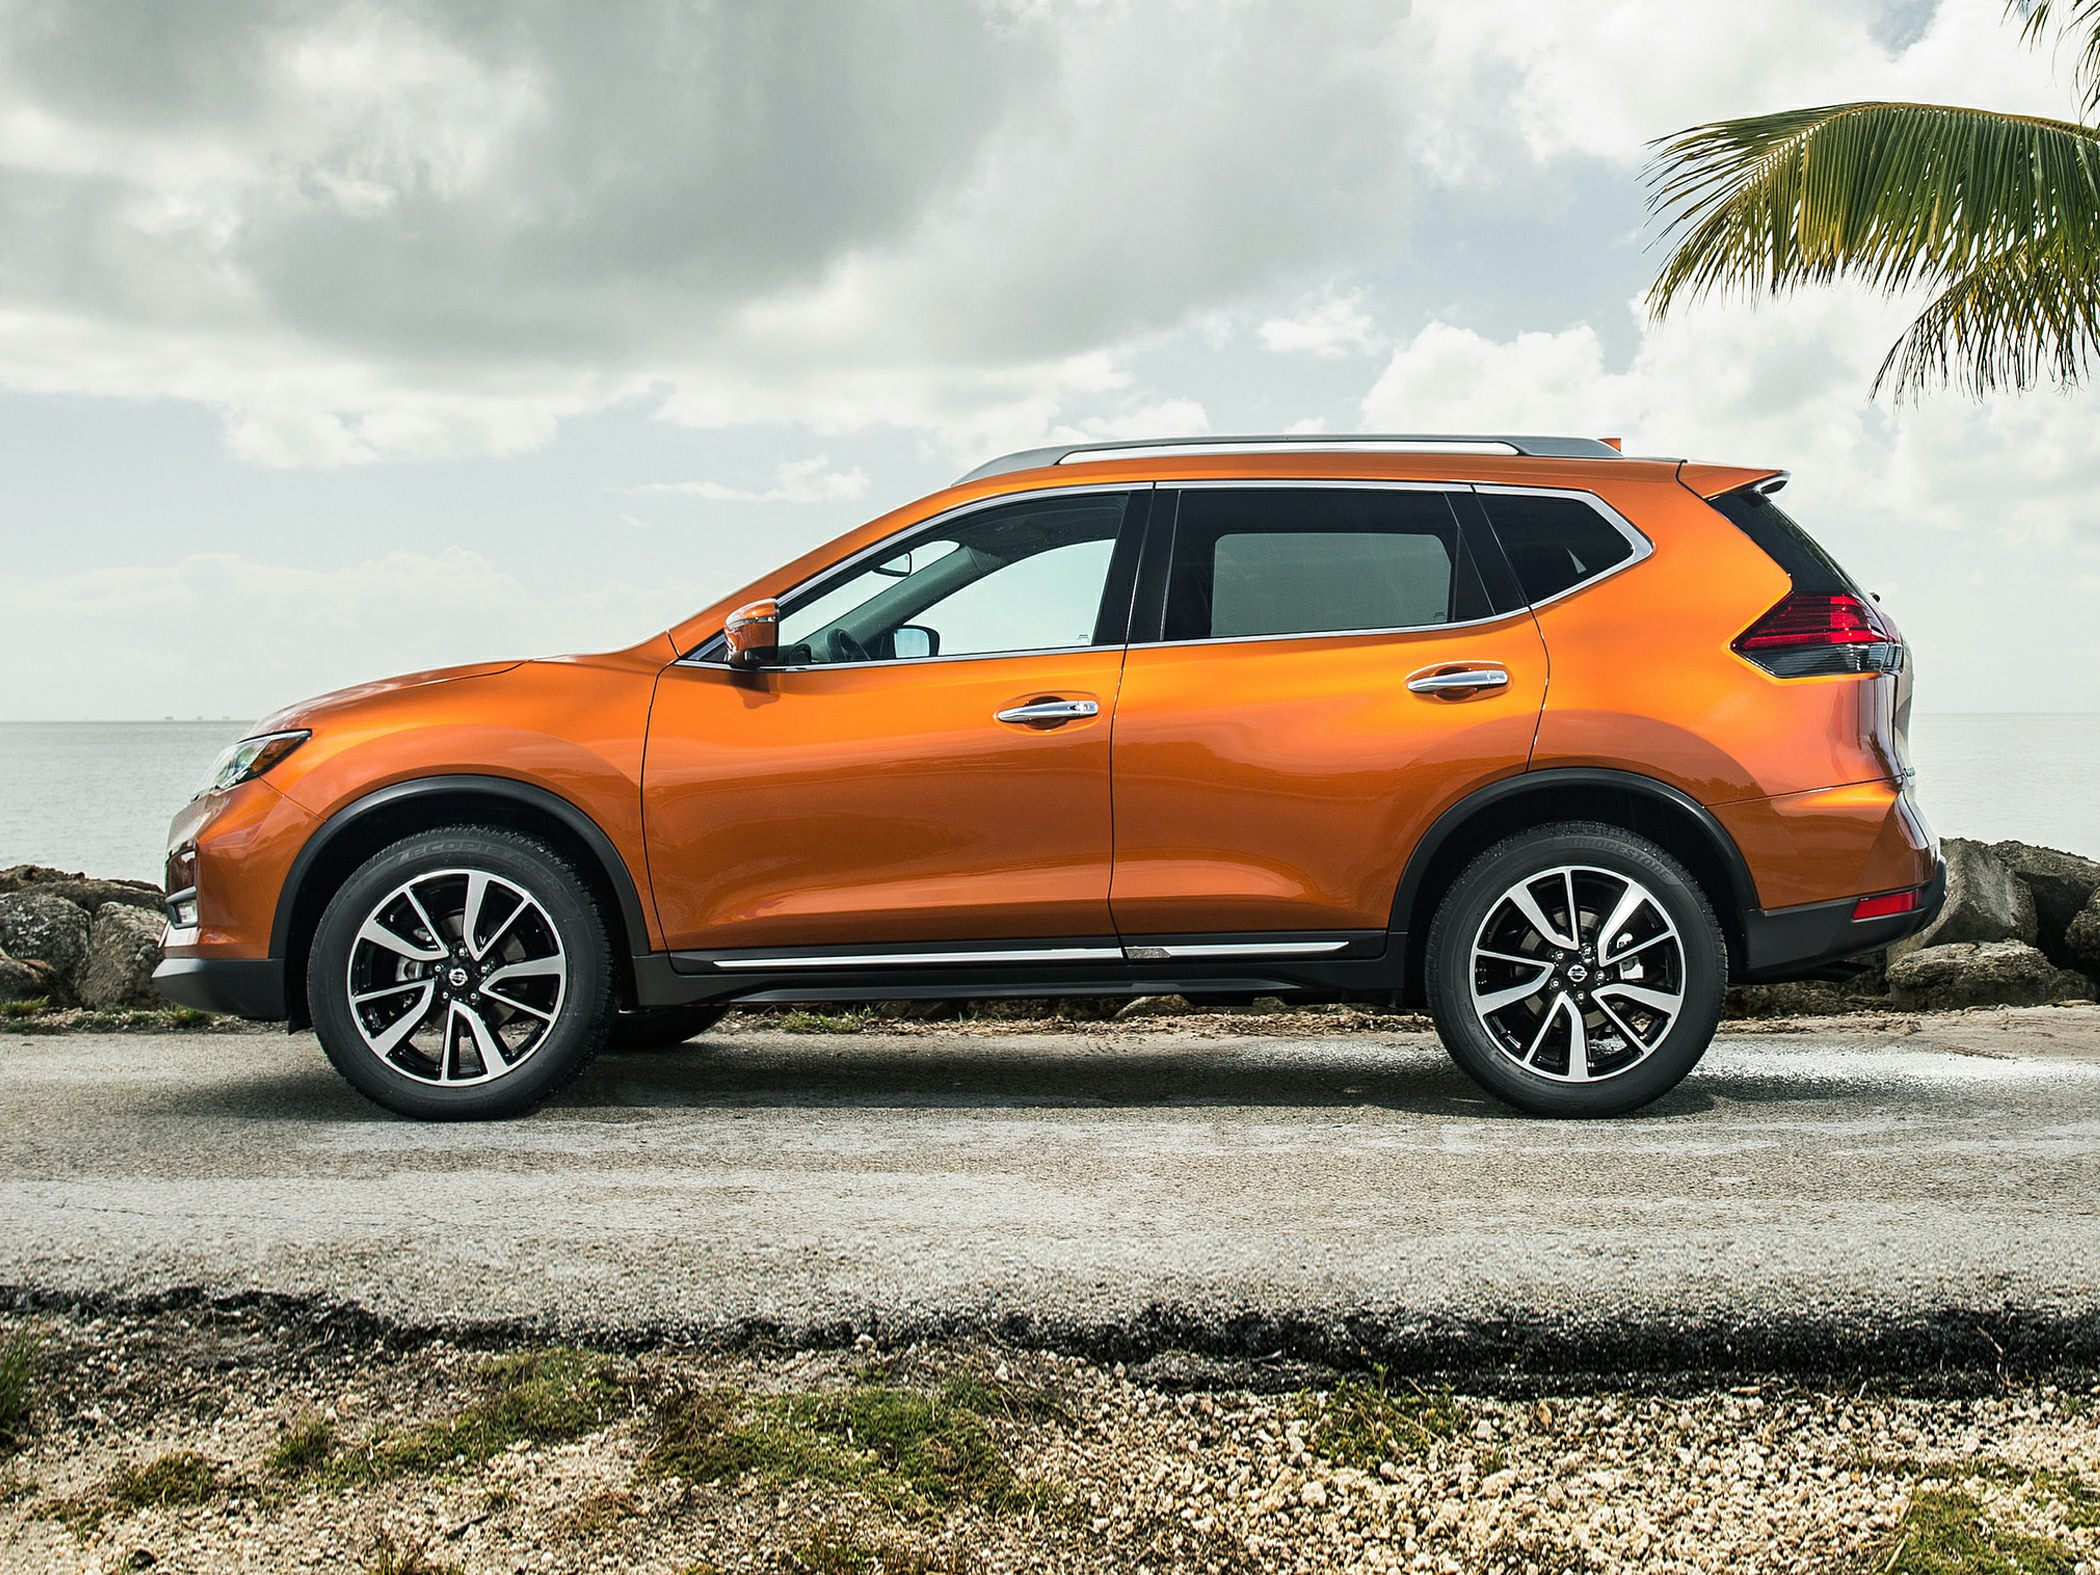 a general may vehicles and honda models nissan acura volvo all electrical issue mpg contain damaged recalling these suv september built toyota safety between motors mdx crossover recall cars articles roundup suvs is